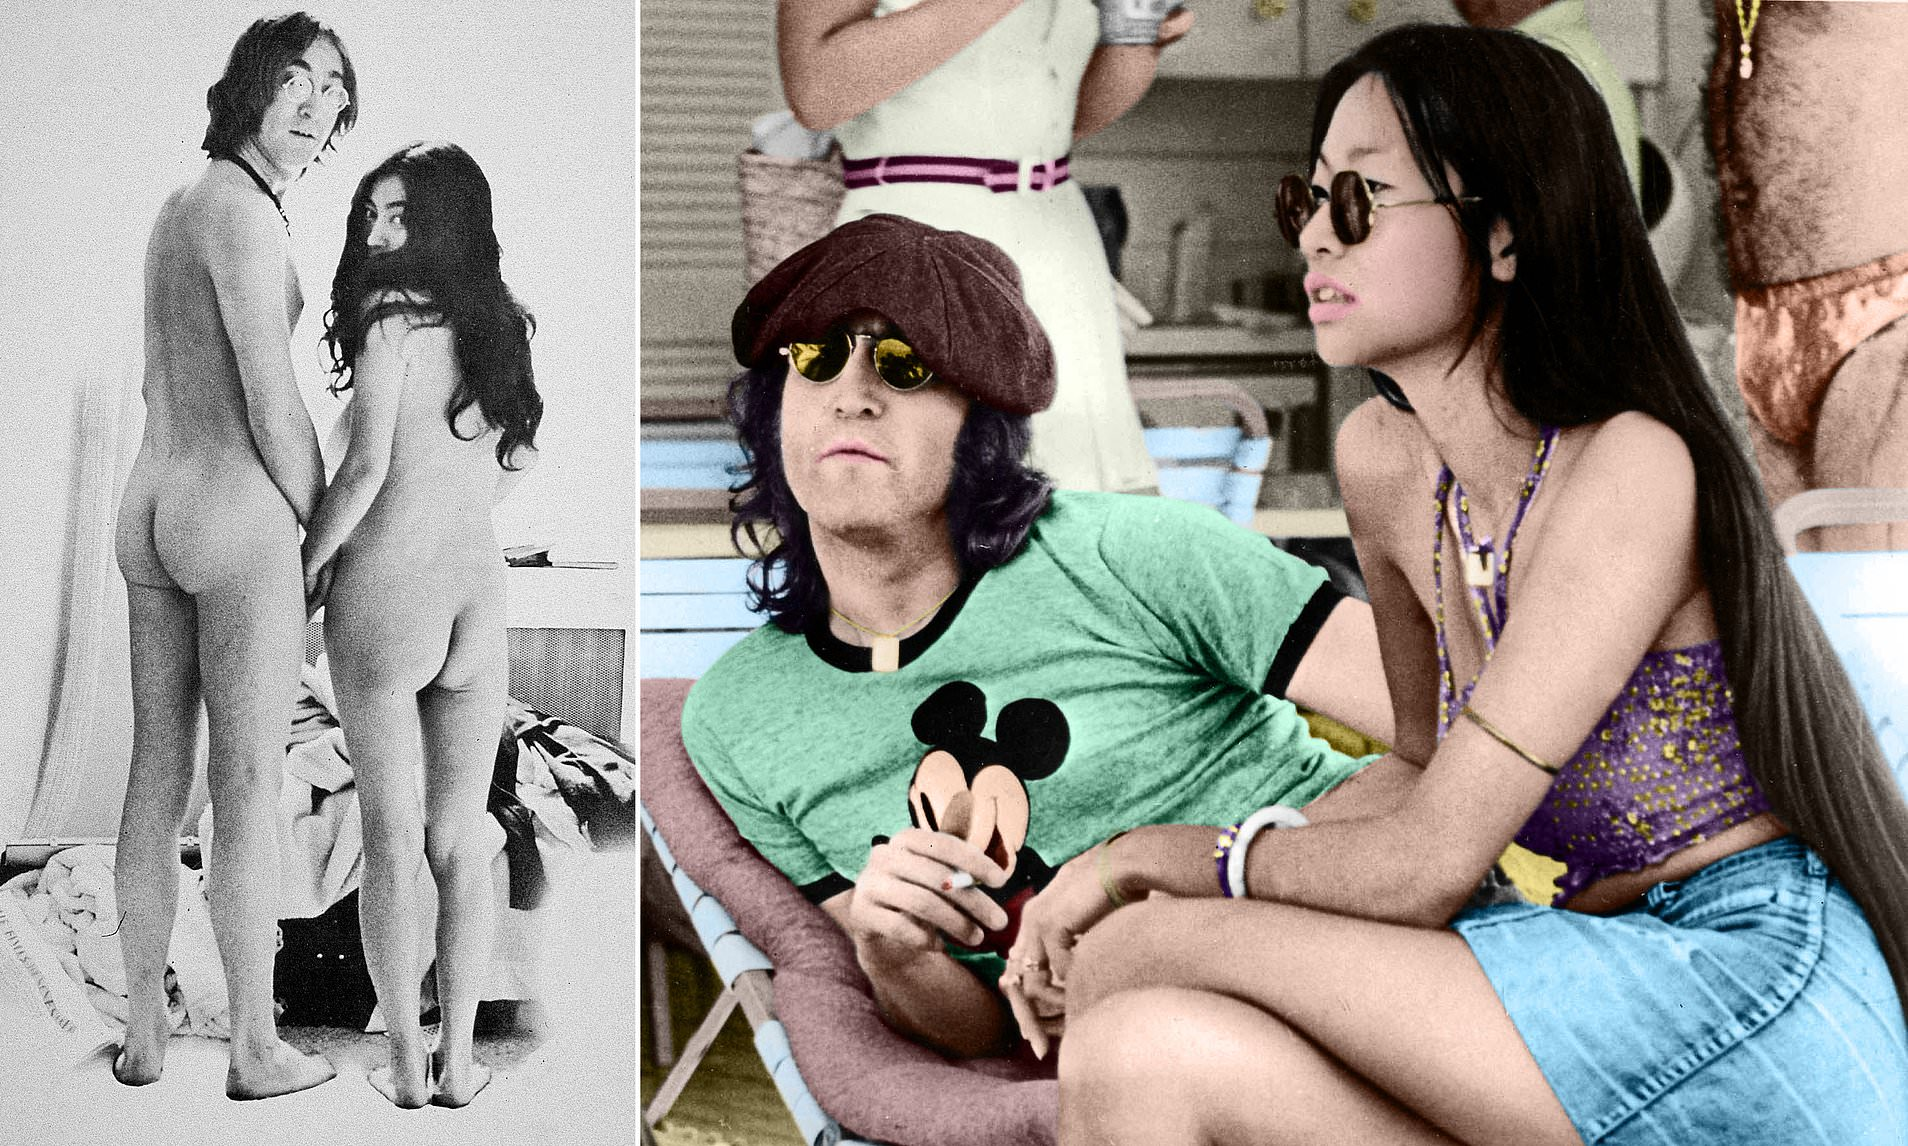 john lennon nude frontal excited